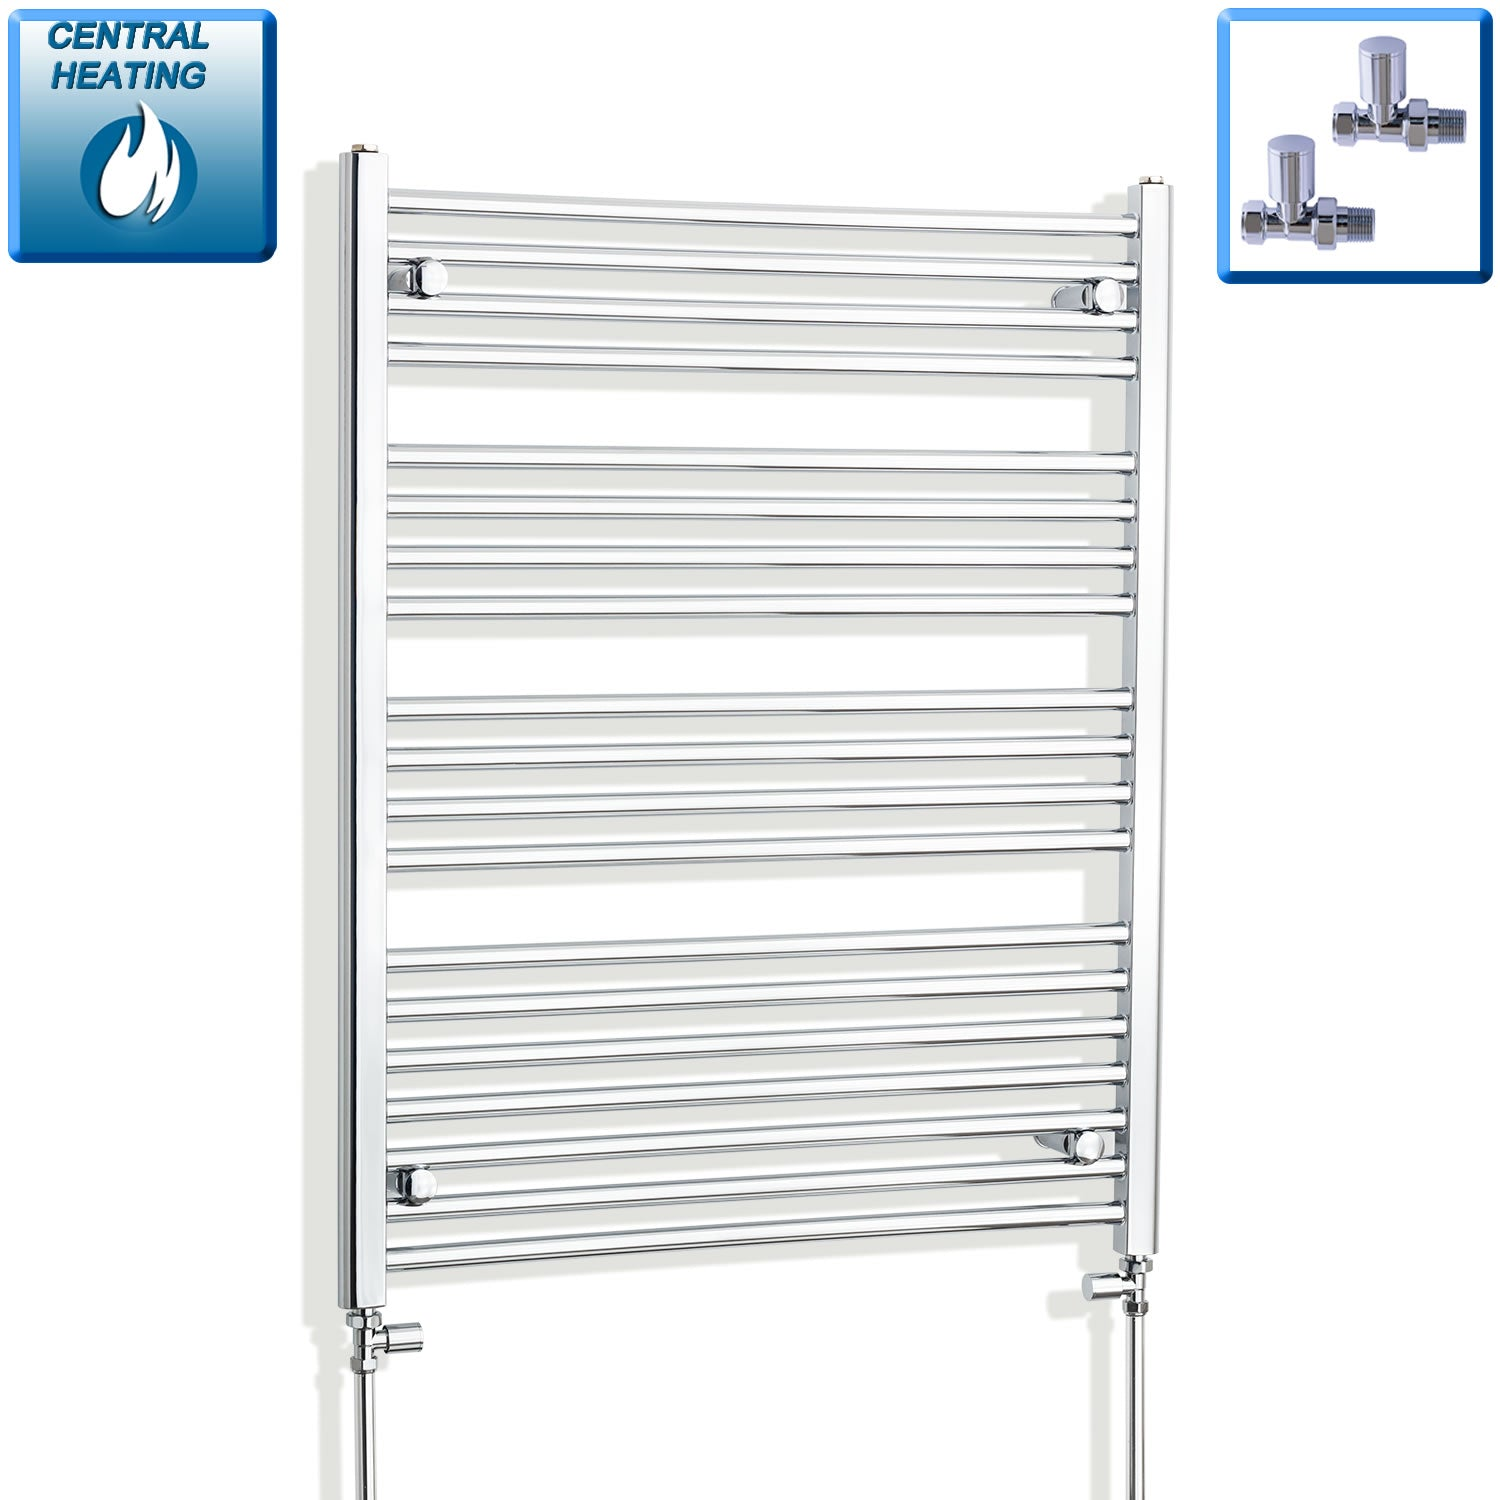 900mm Wide 1000mm High Chrome Towel Rail Radiator With Straight Valve